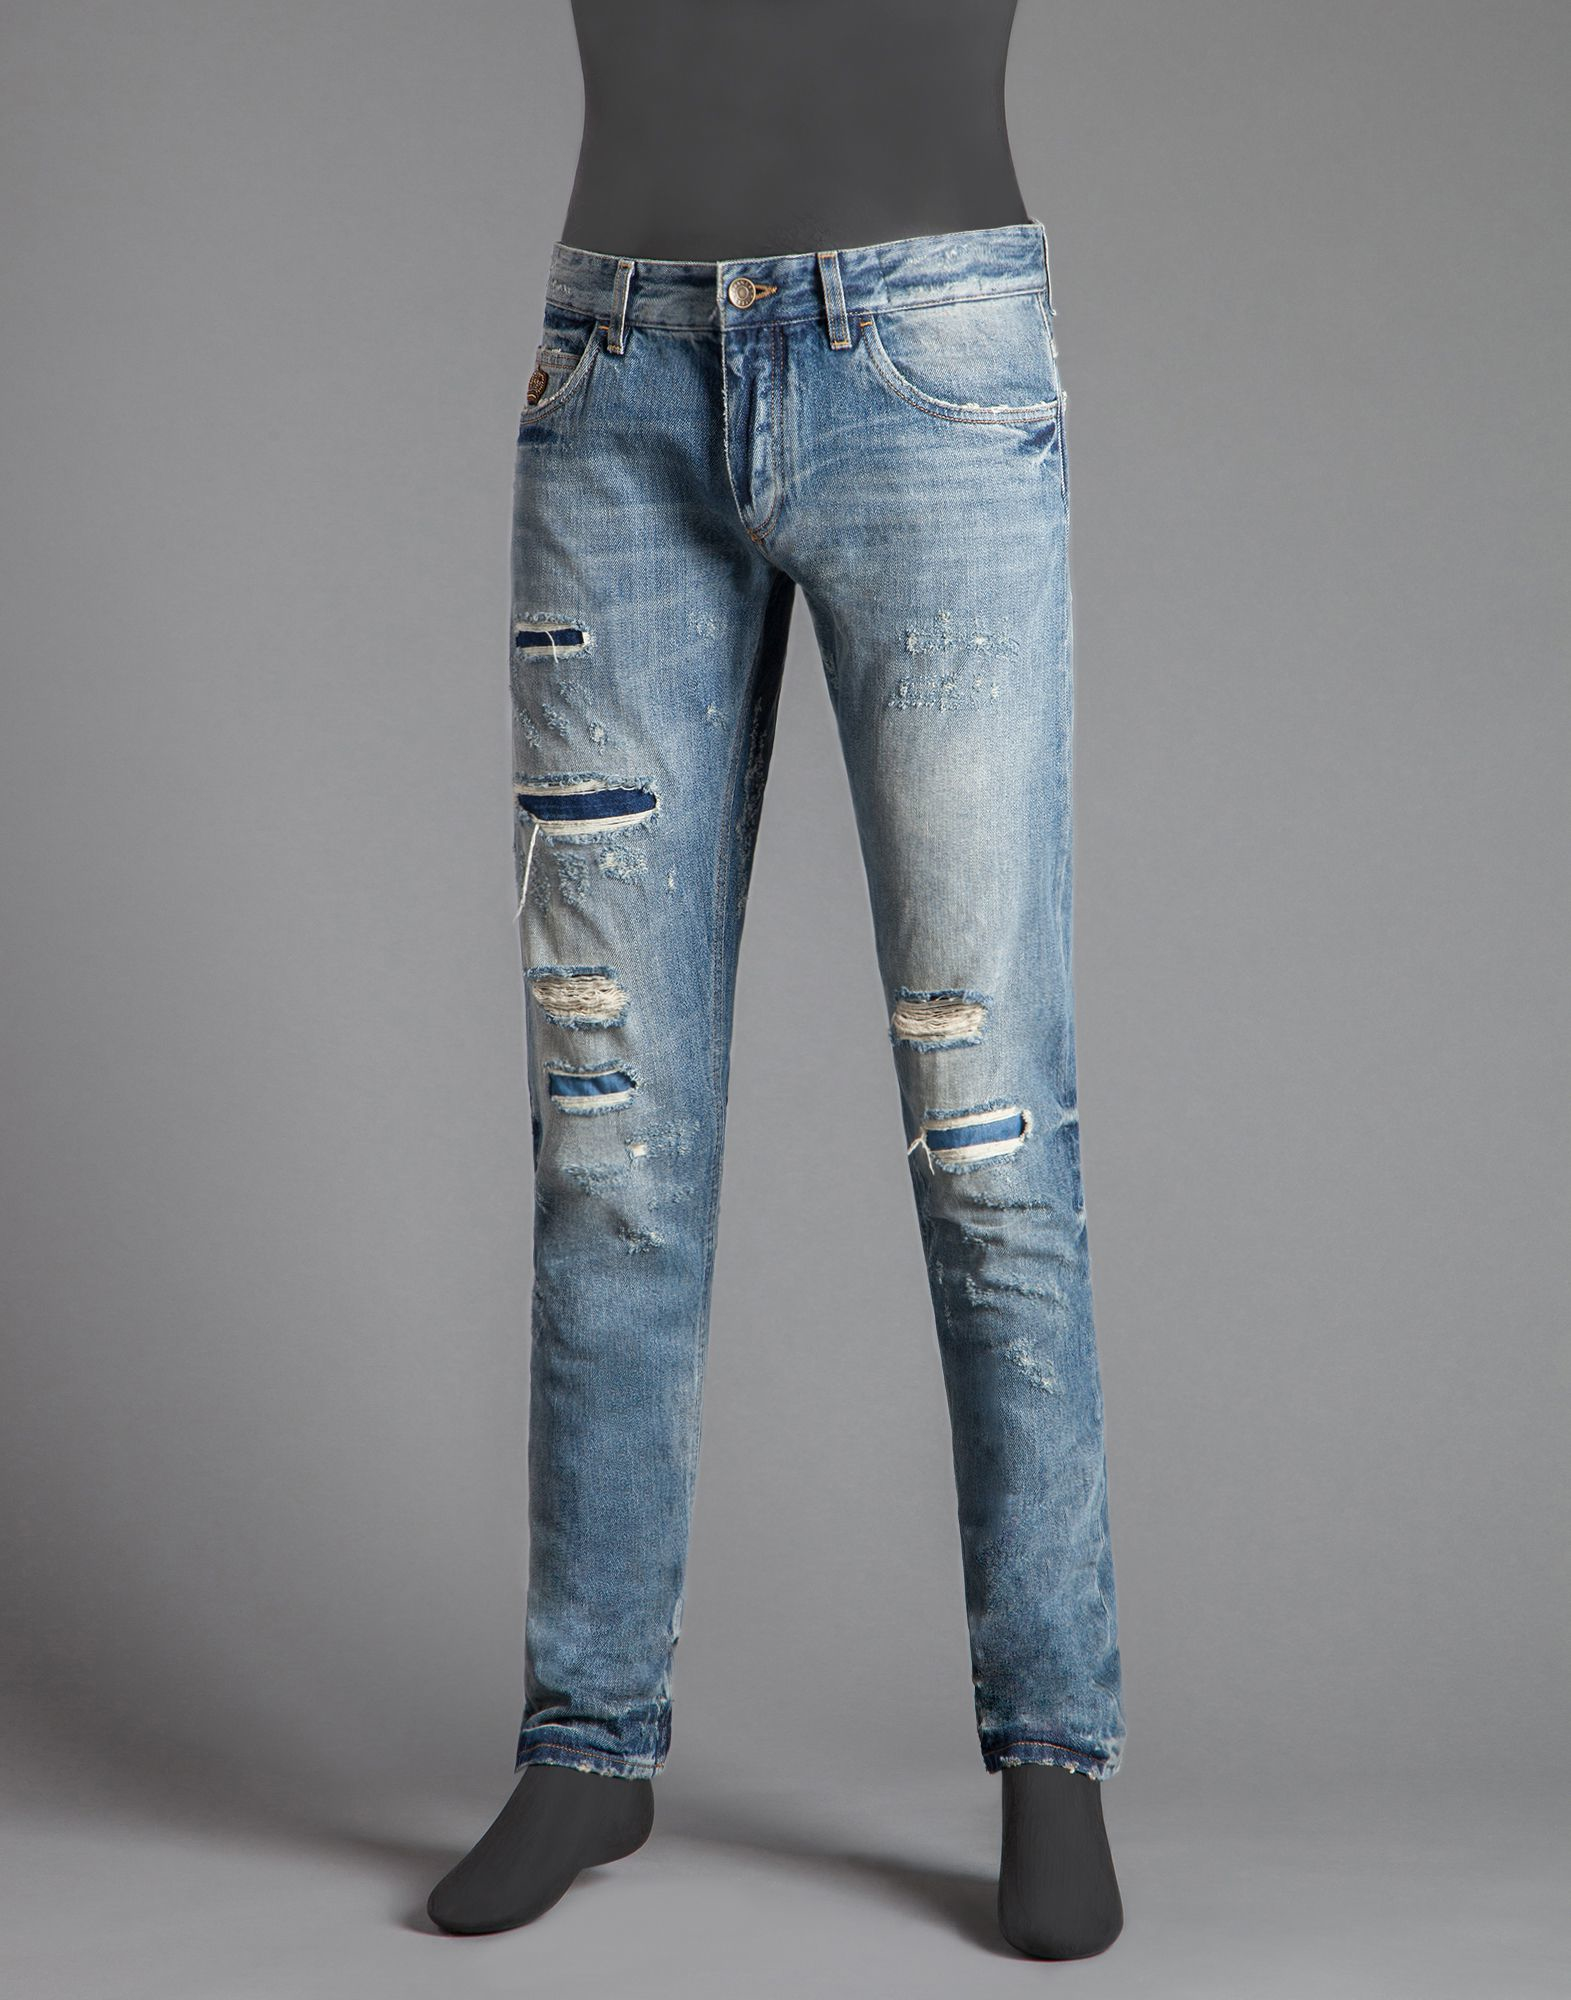 Sale Buy Cheap Sale Footlocker Slim-fit Distressed Denim Jeans Dolce & Gabbana New Clearance Newest q4wN9zF3R